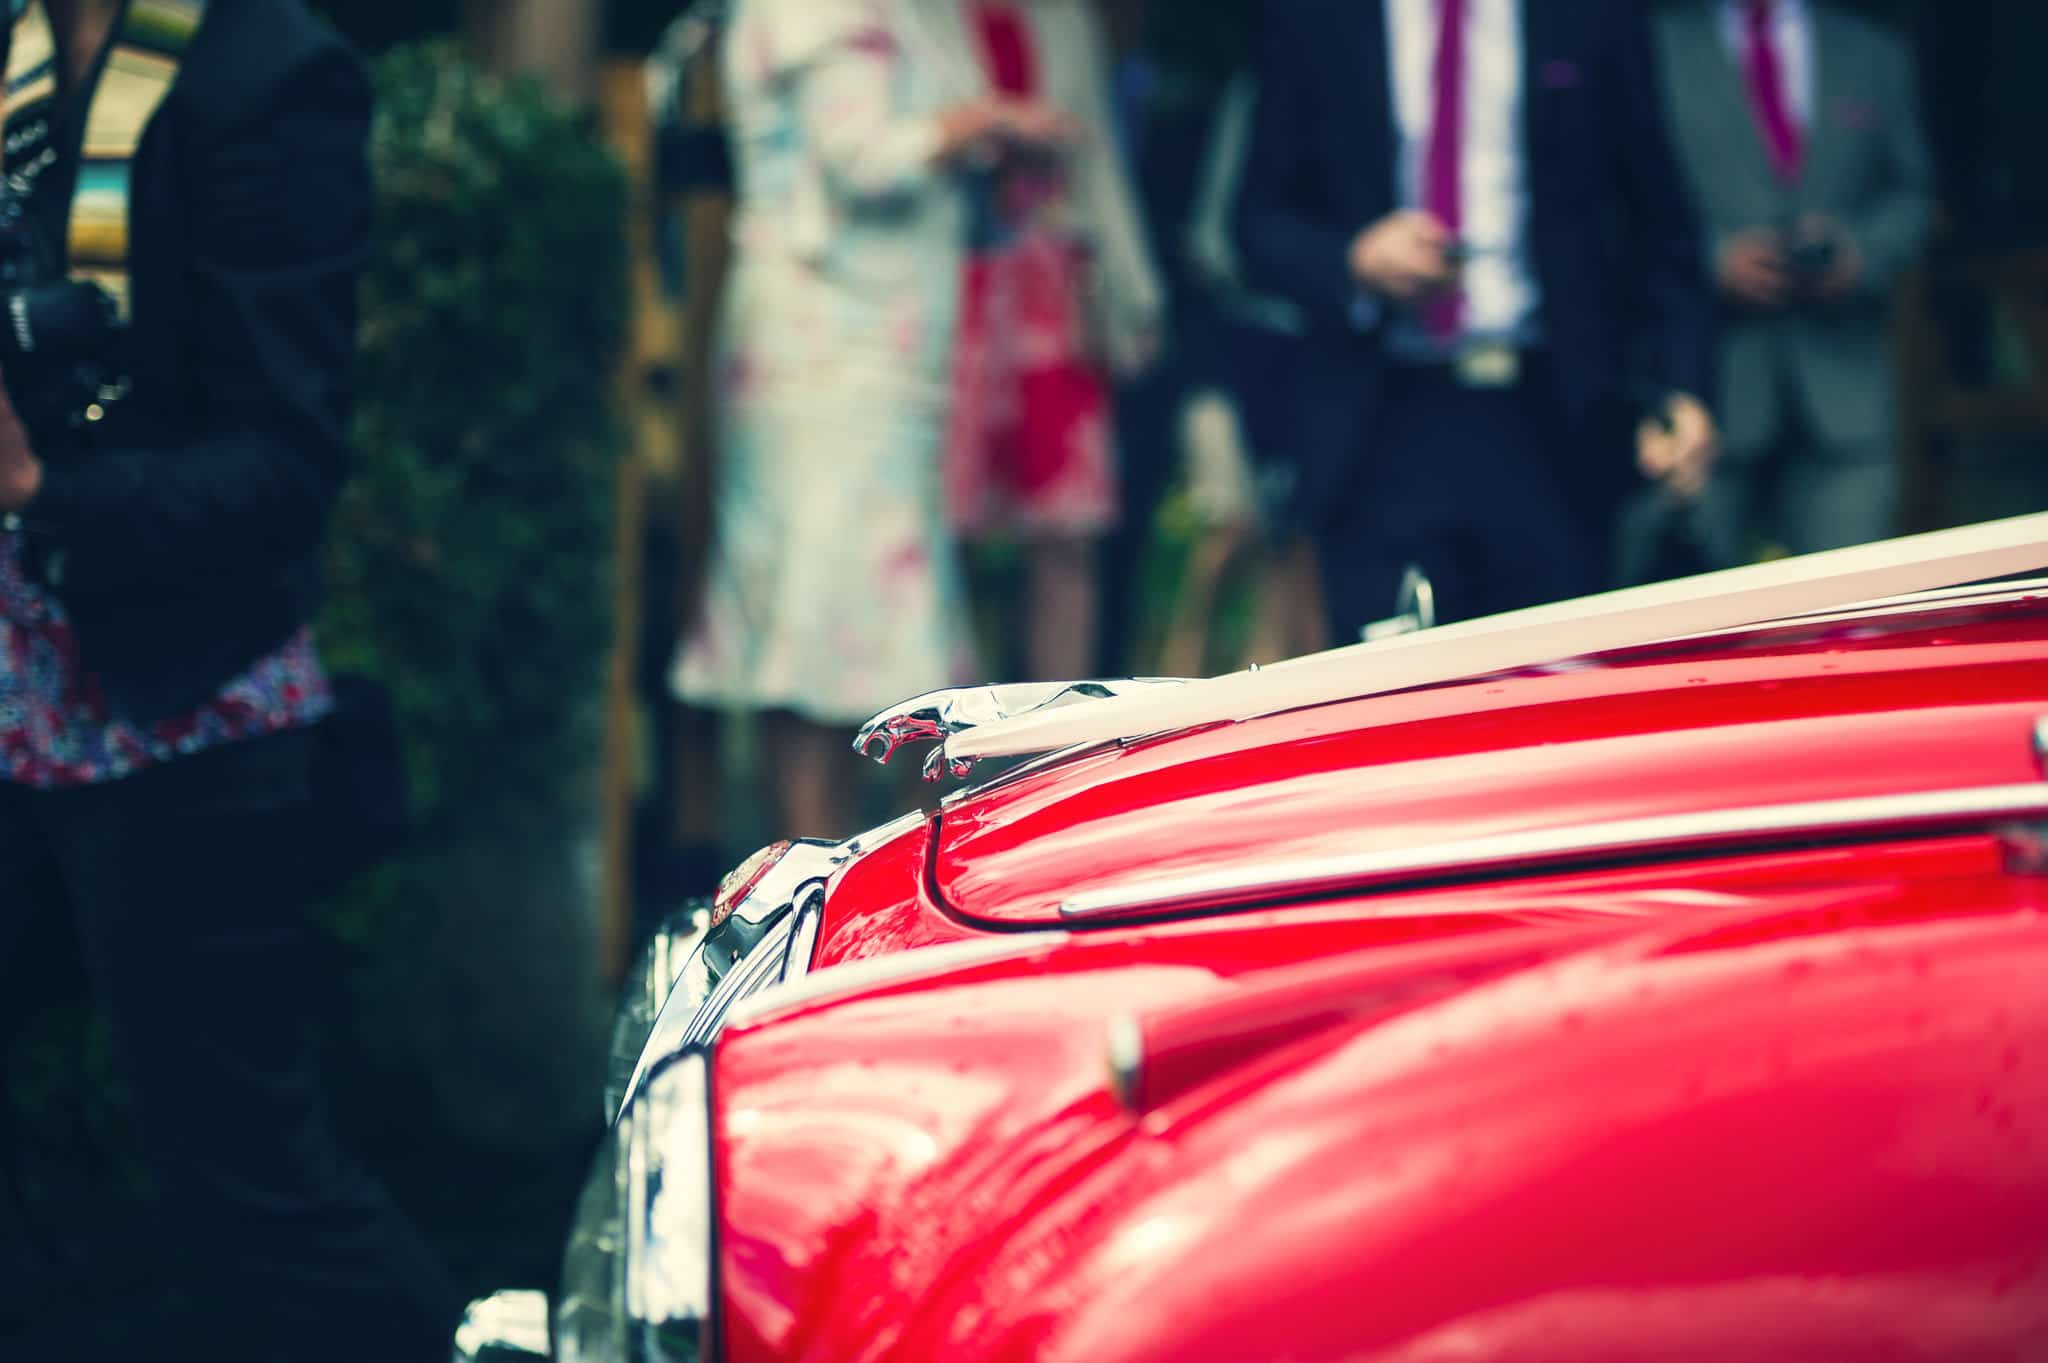 wedding-photography-morgans-hotel-swansea-south-wales (21)